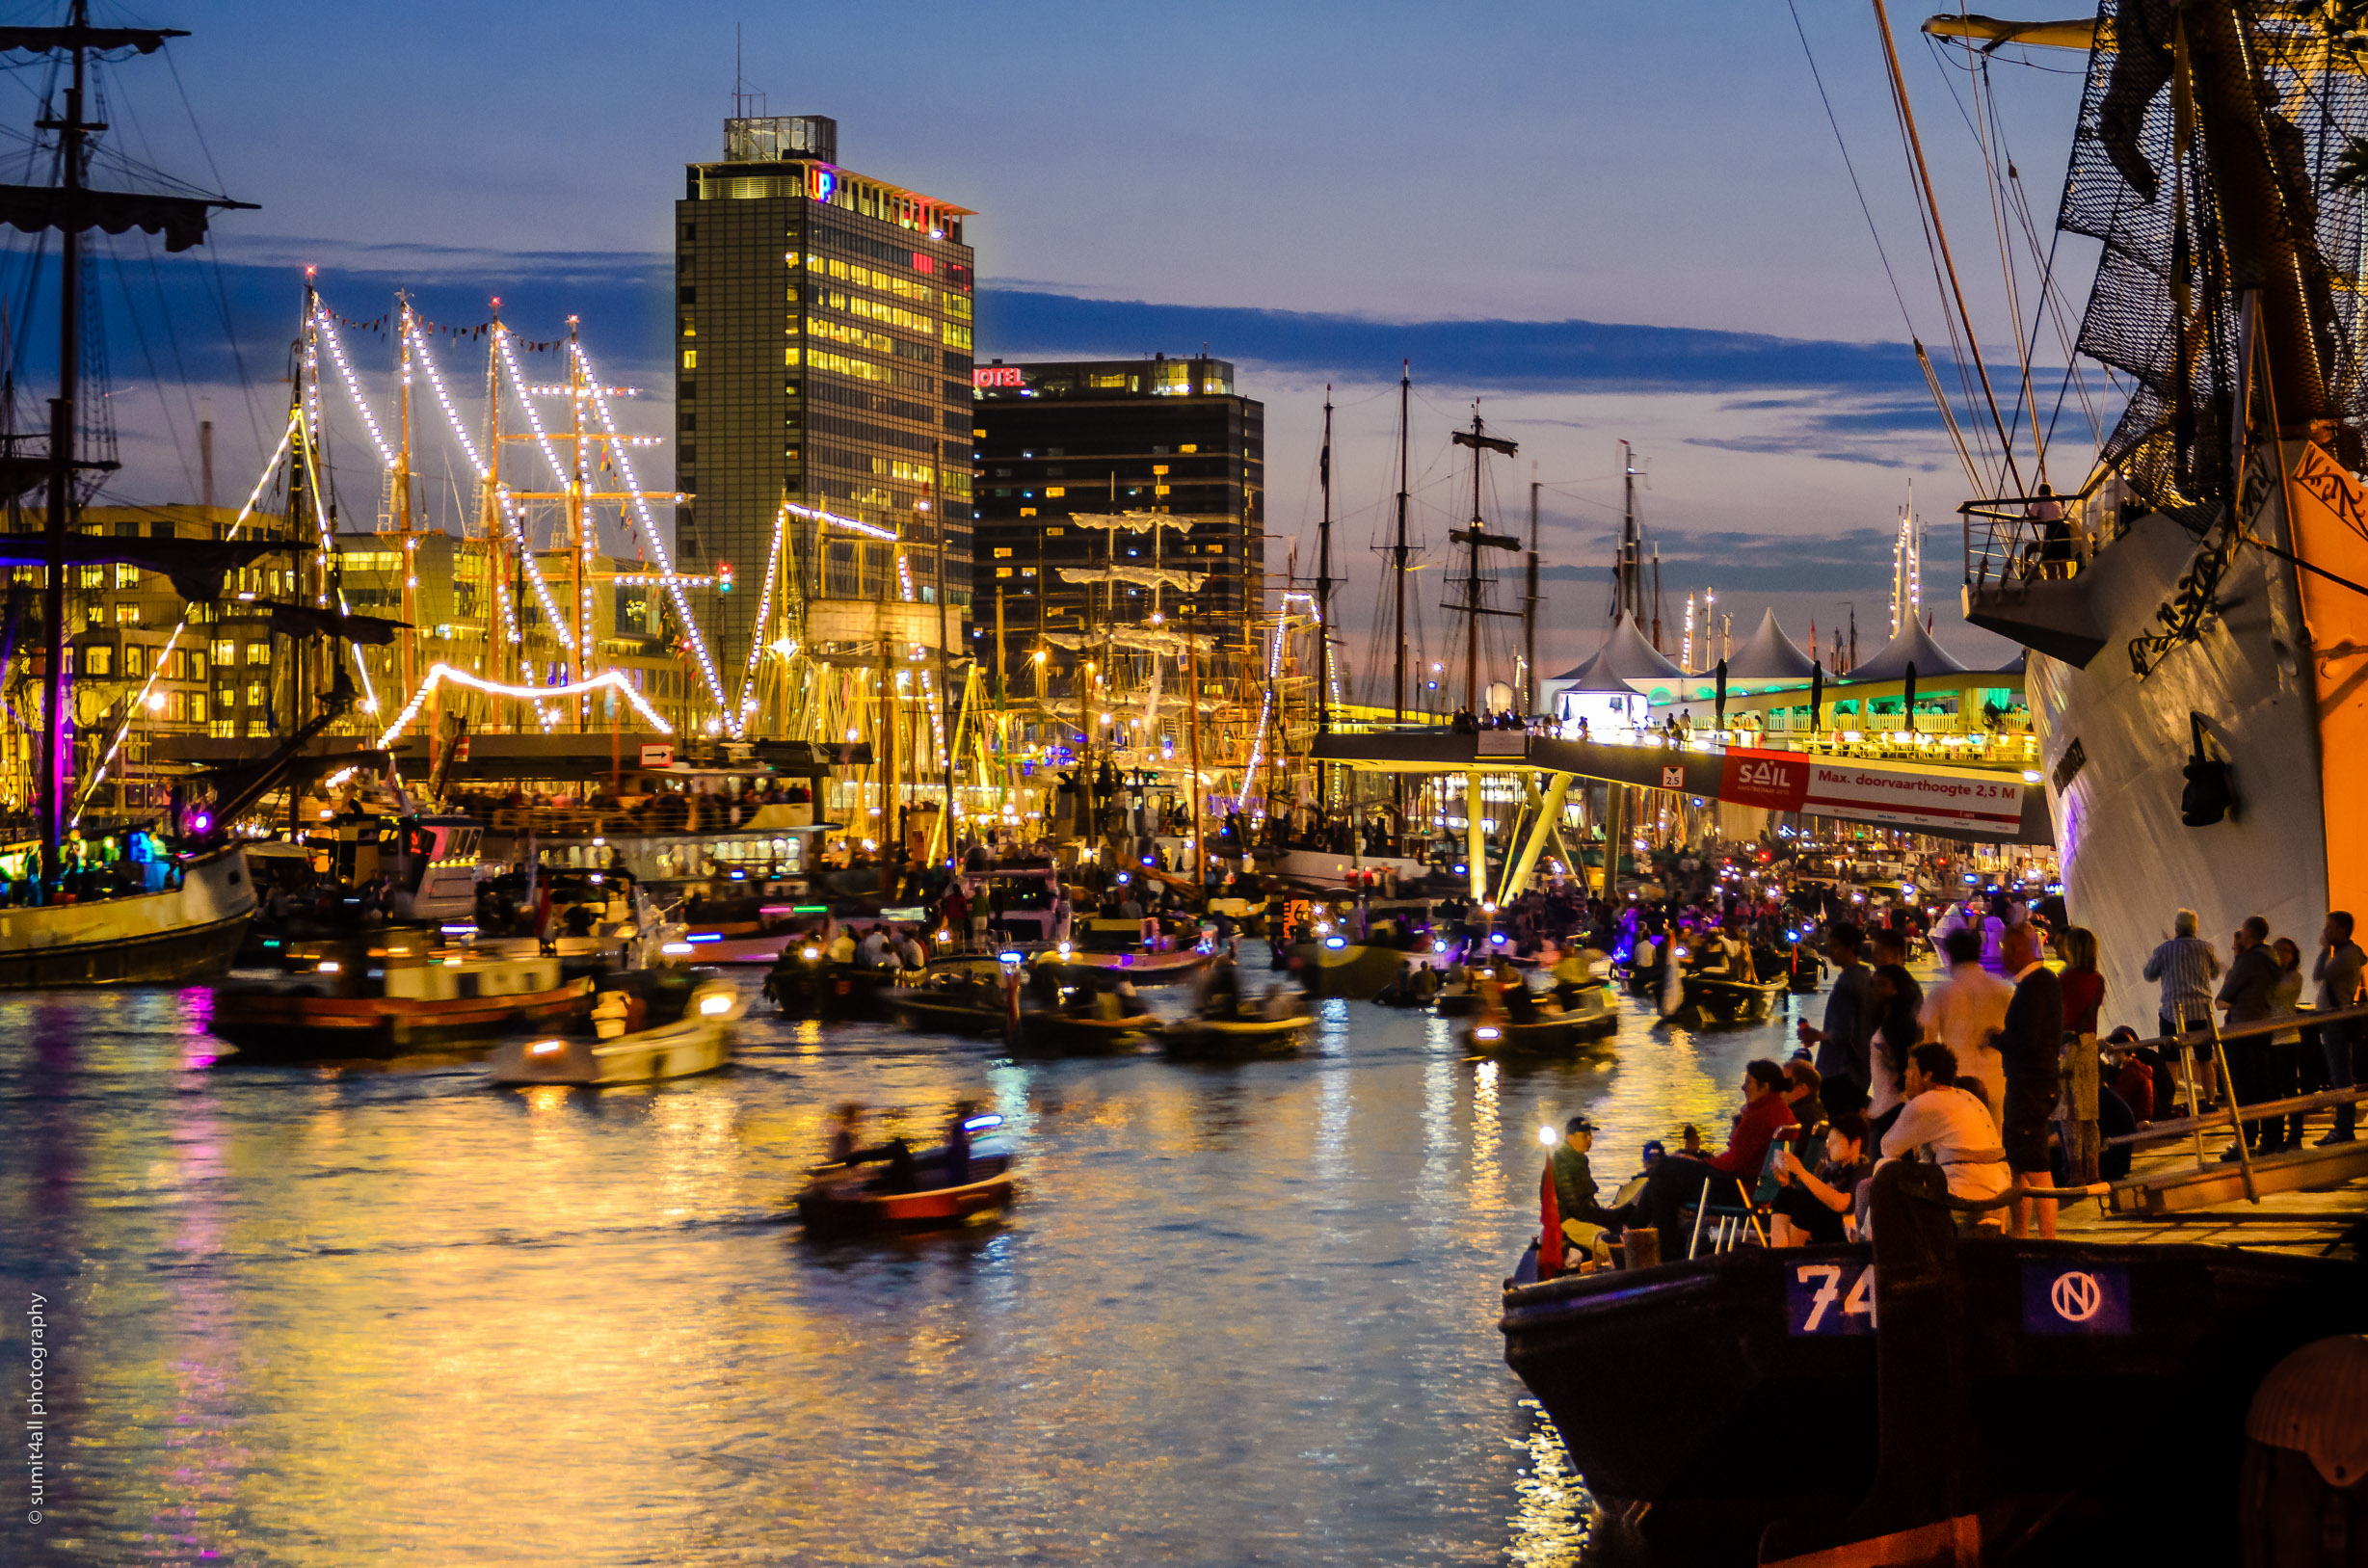 SAIL 2015 in Pictures – About Tall Ships and Maritime Heritage